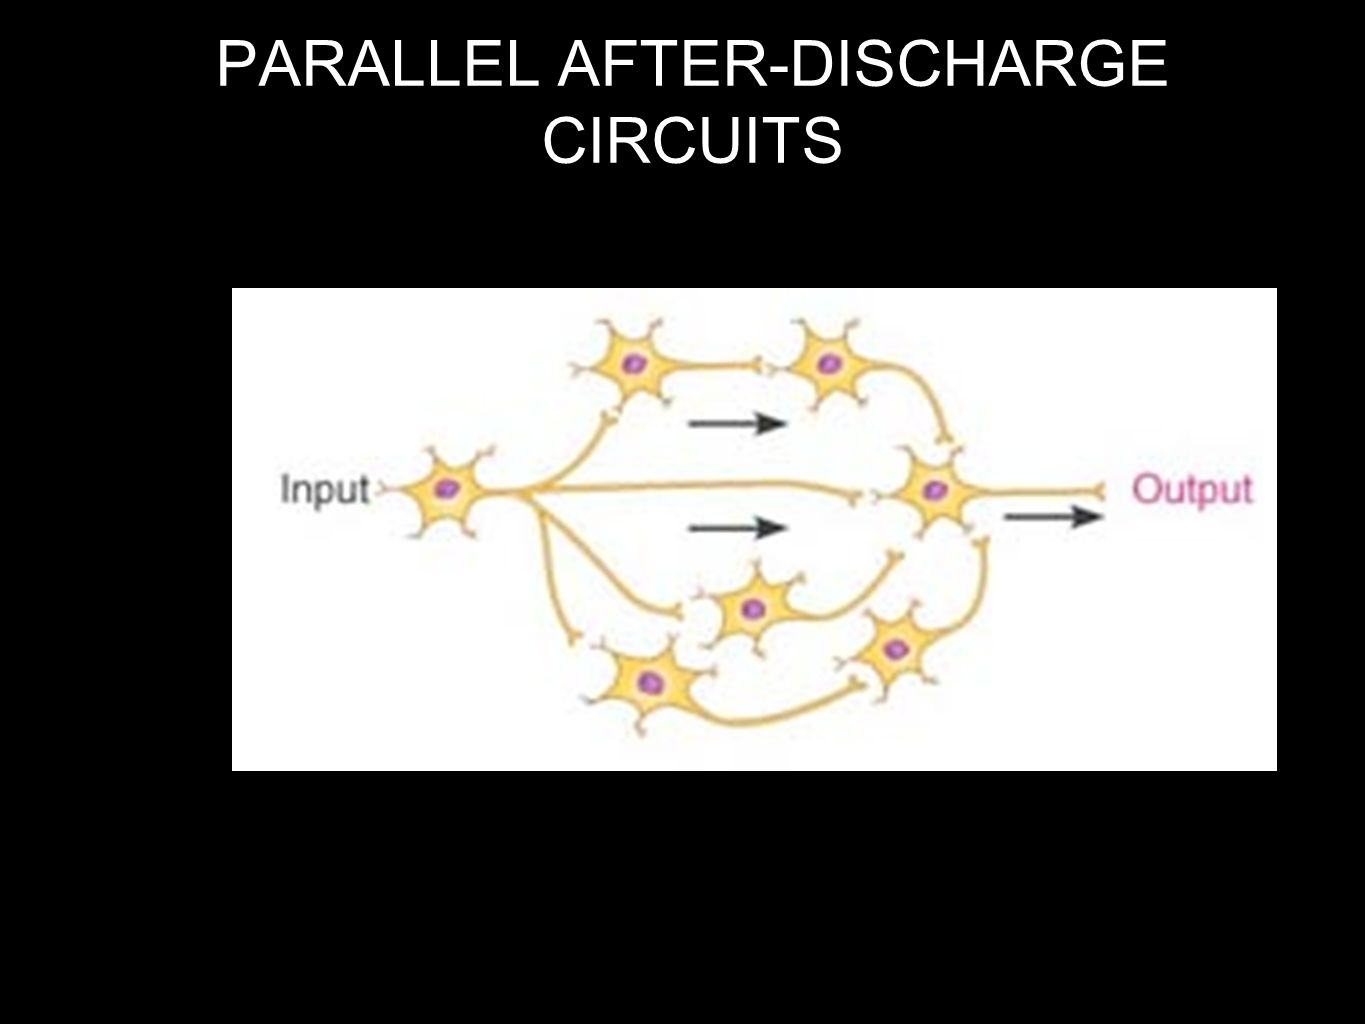 PARALLEL AFTER-DISCHARGE CIRCUITS